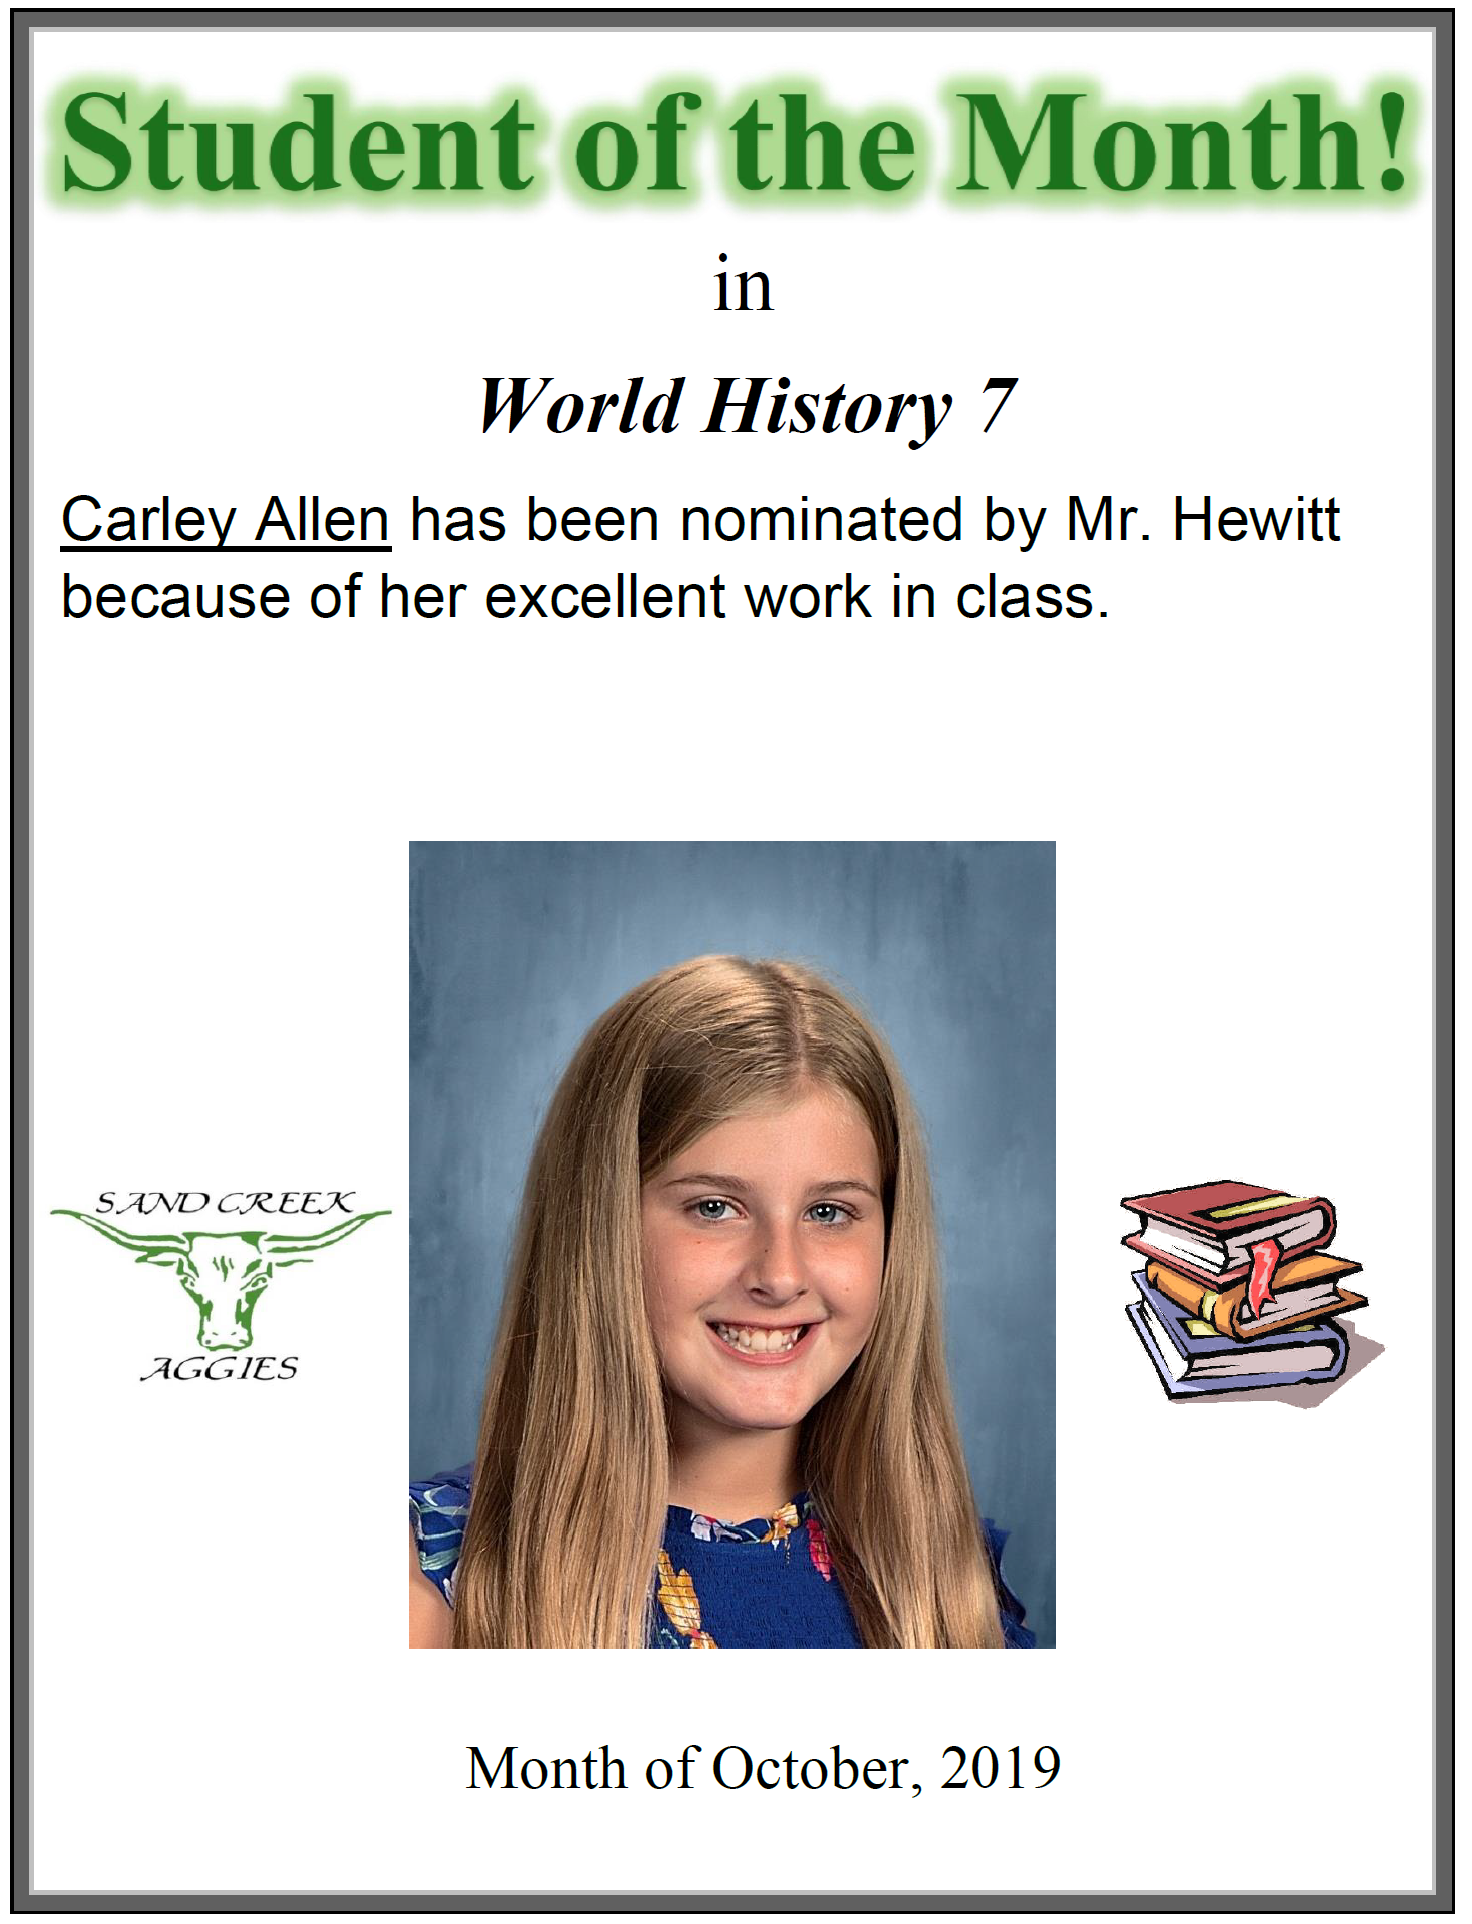 Student of the Month for October 2019